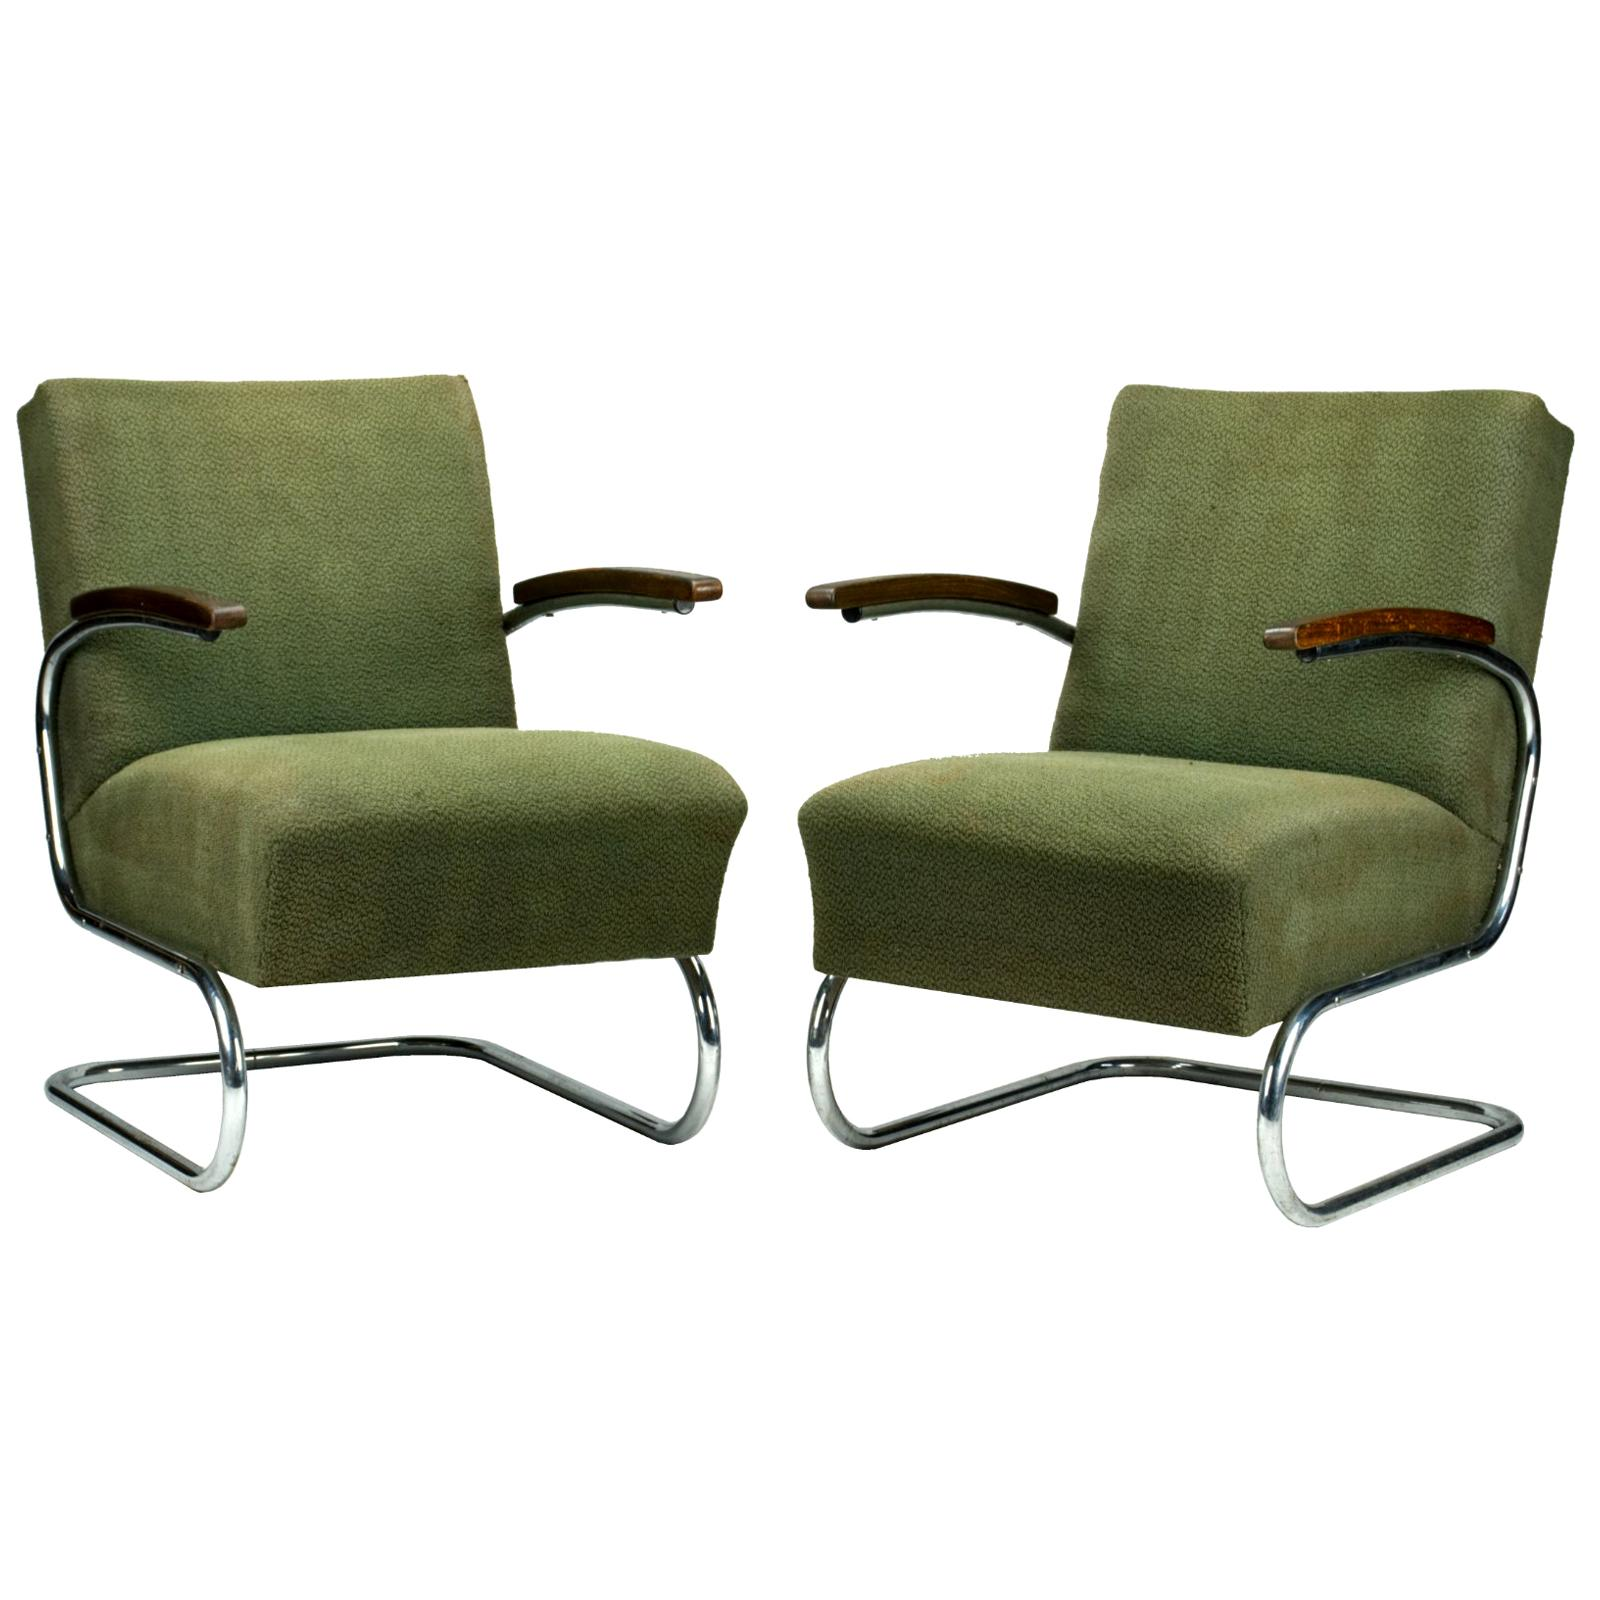 Chrome Tubular Steel Cantilever Armchairs S411 by Thonet, circa 1930